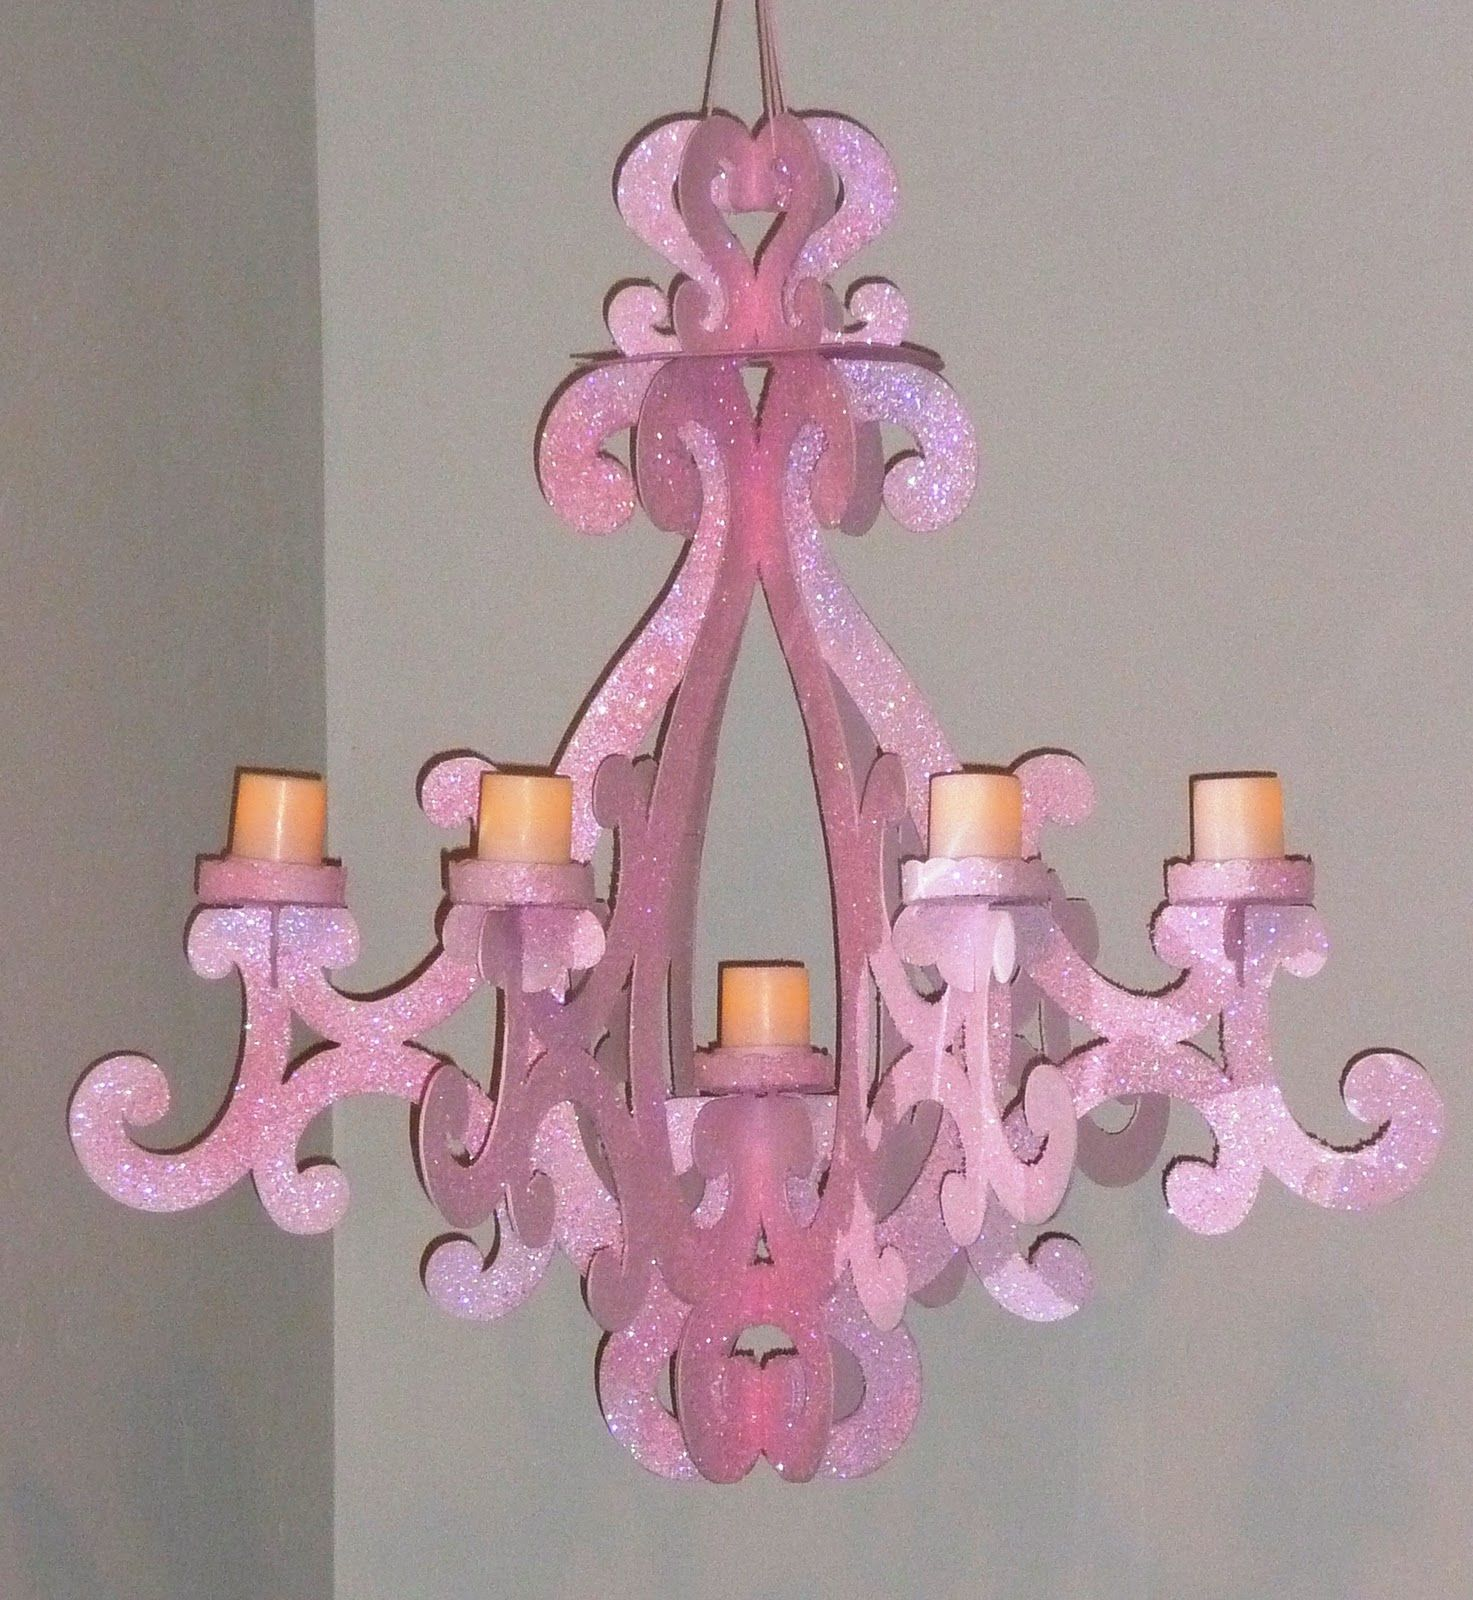 template inspiration for my cardboard chandelier | For the Home ... for Paper Chandelier Craft  183qdu